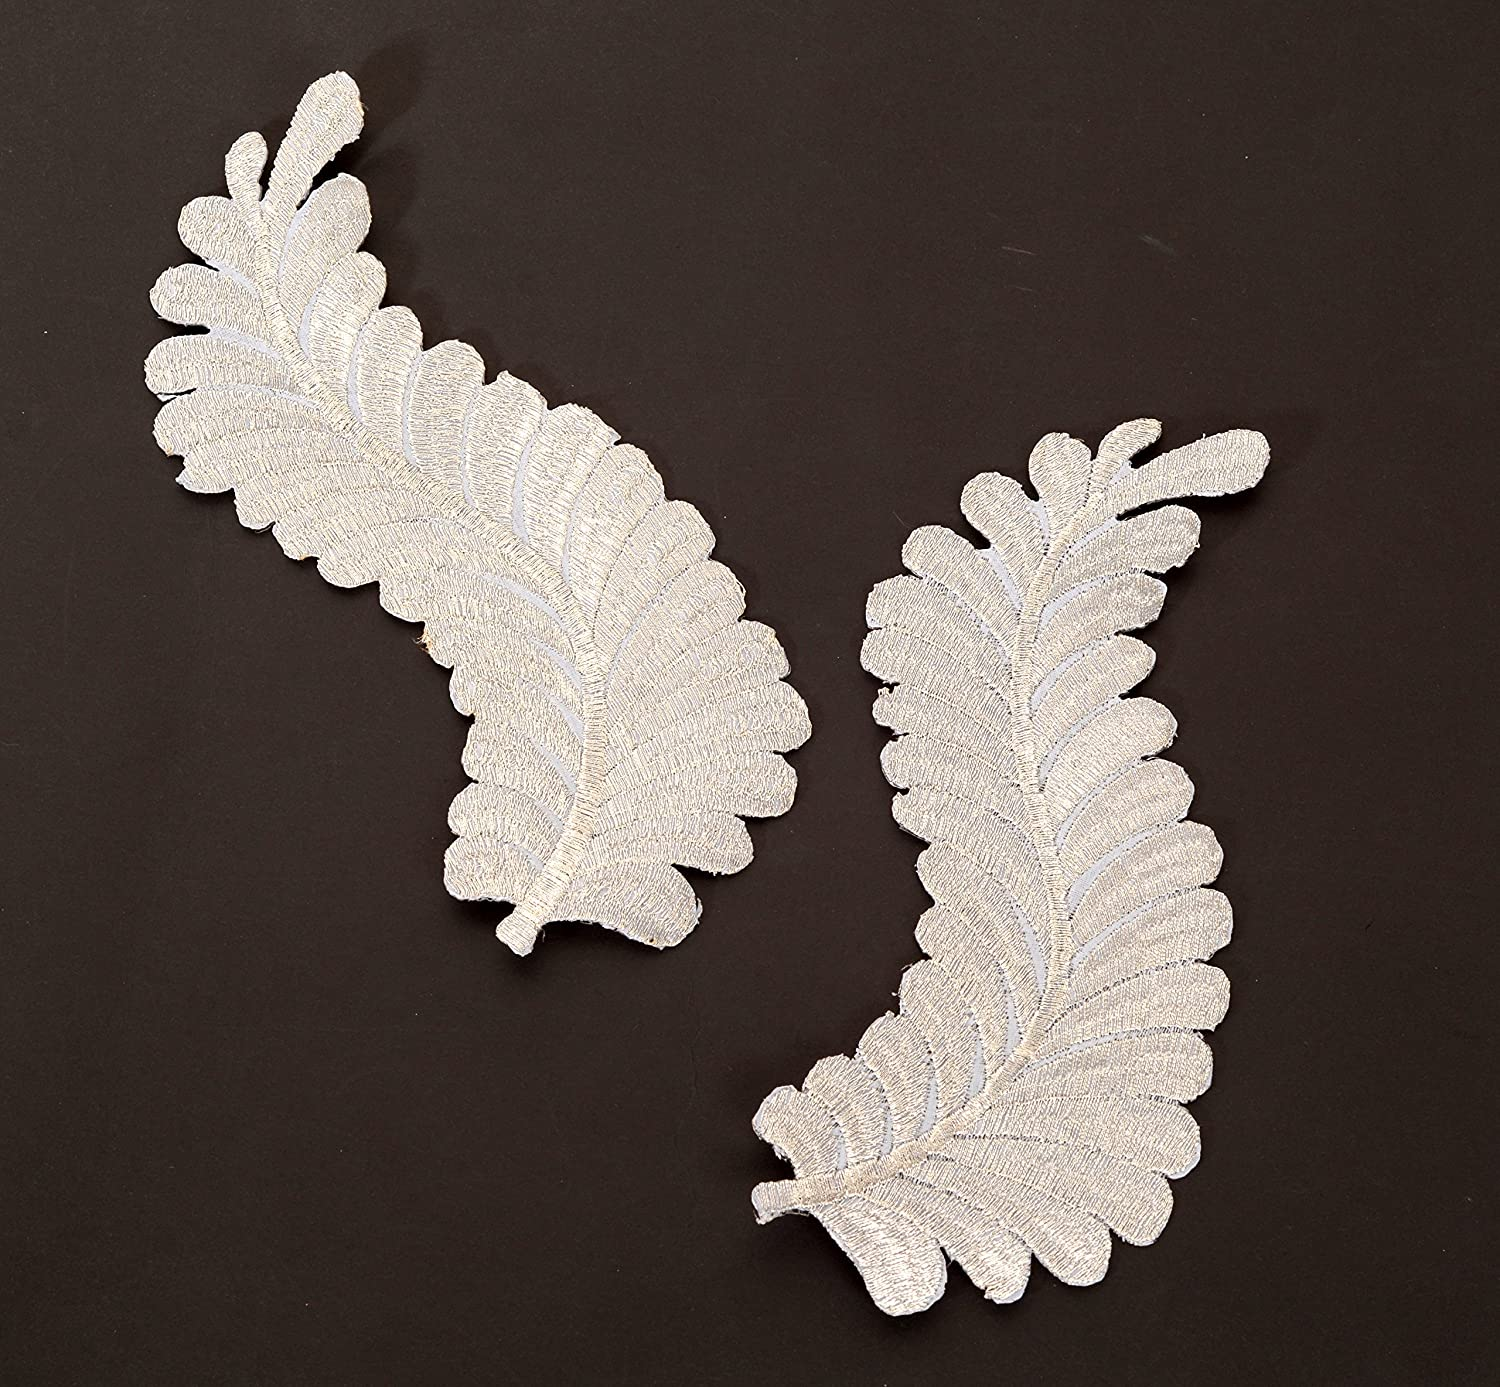 2Pcs Embroidered Lace Patches for Wedding Dress Applique DIY Patch Collar Decor